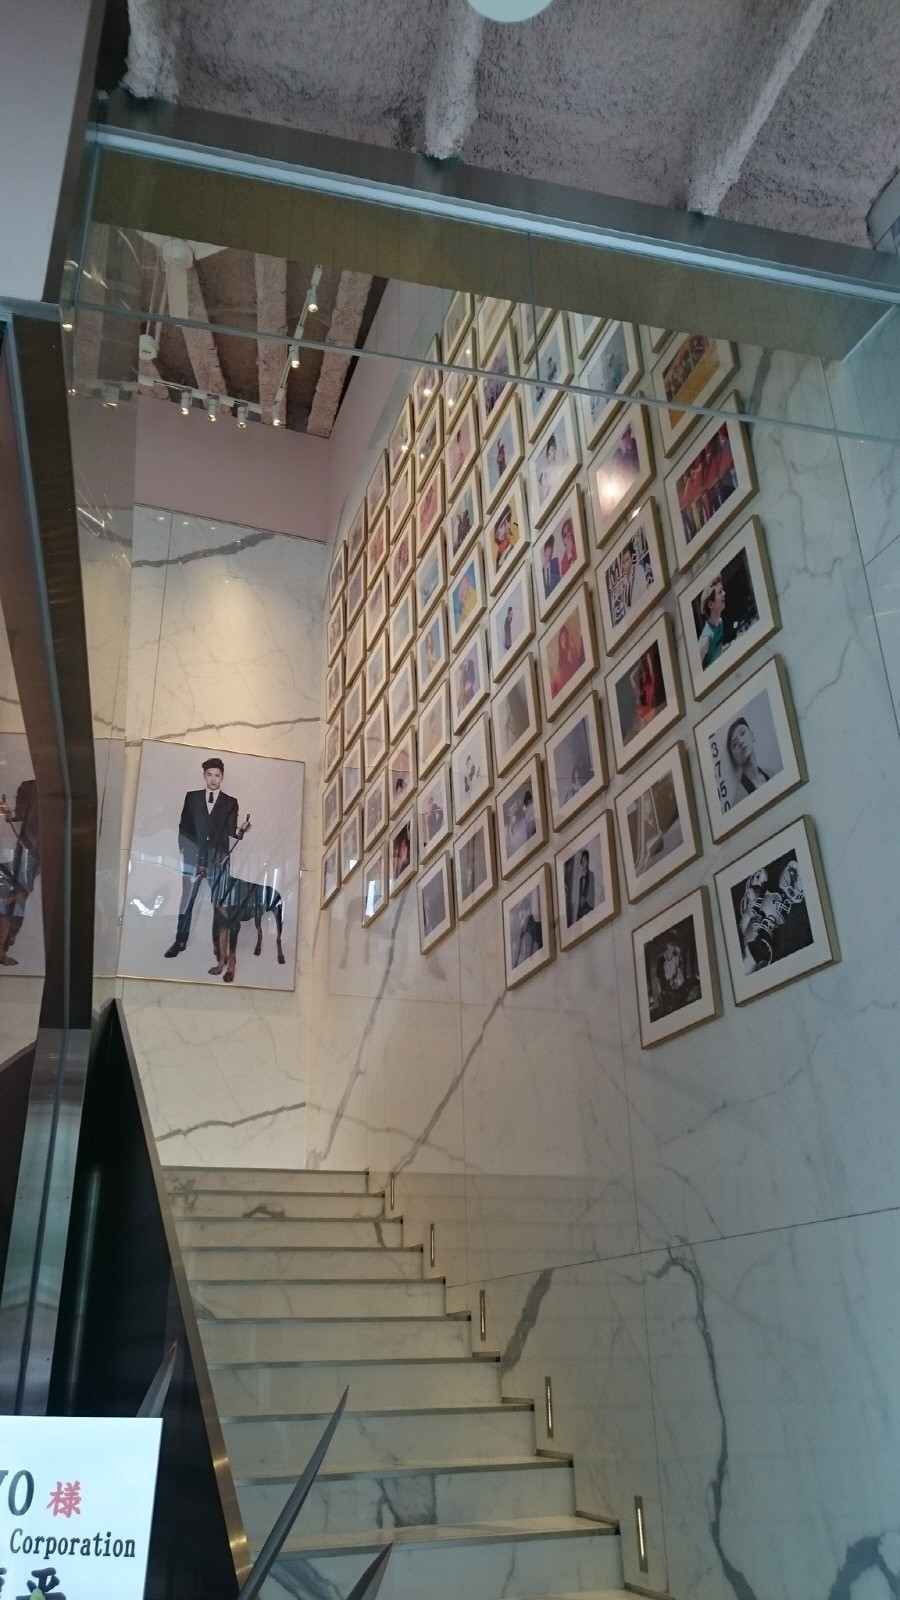 The restaurant also doubles as a museum for posters of SM artists.